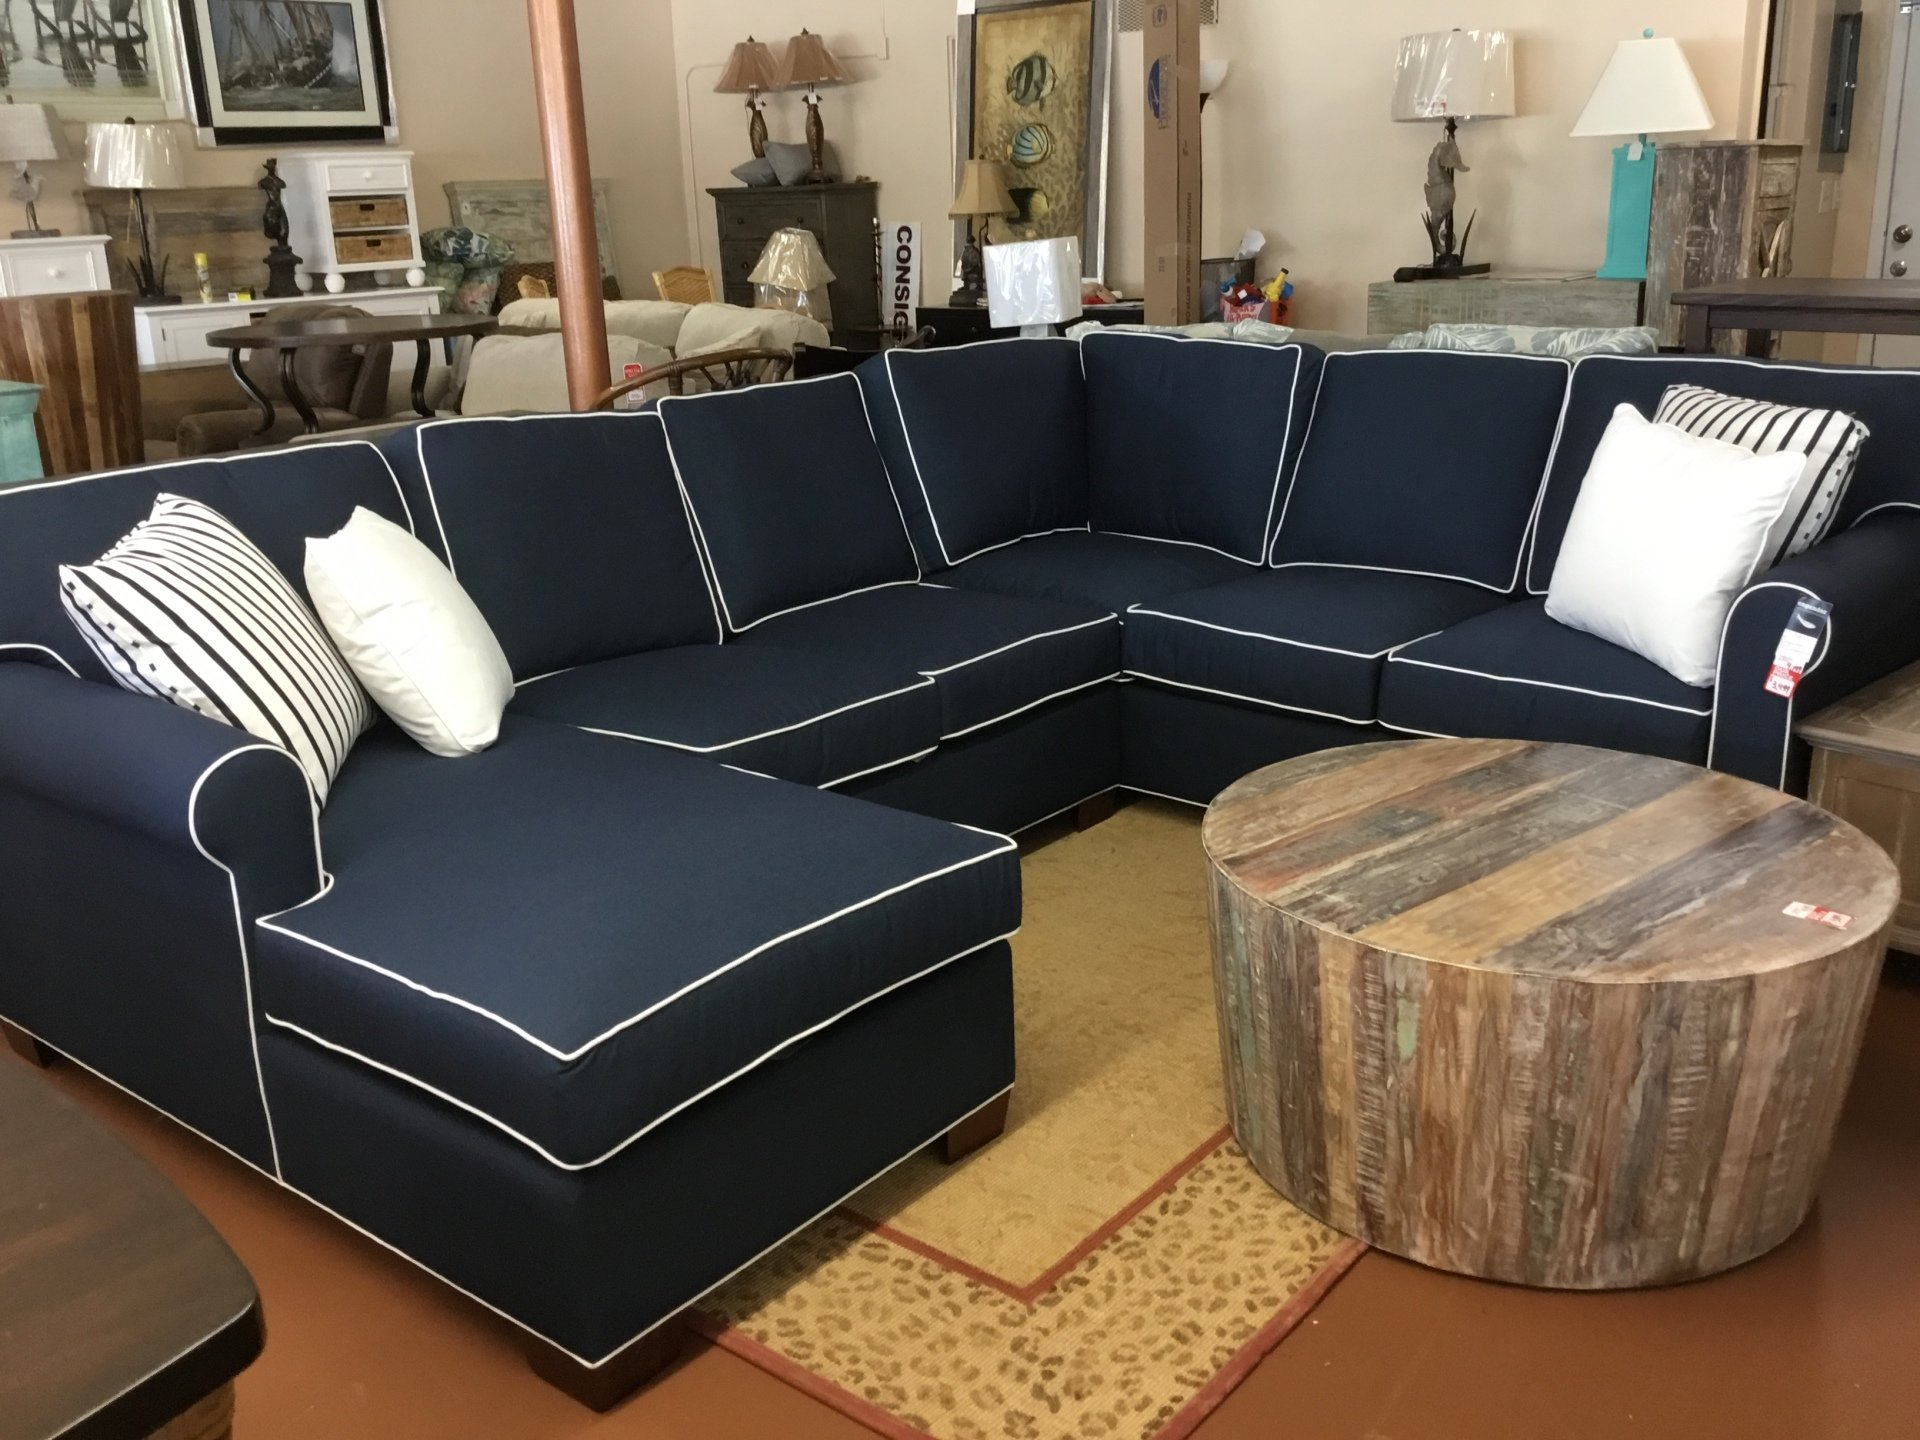 Large Selection Of Living Room Furniture